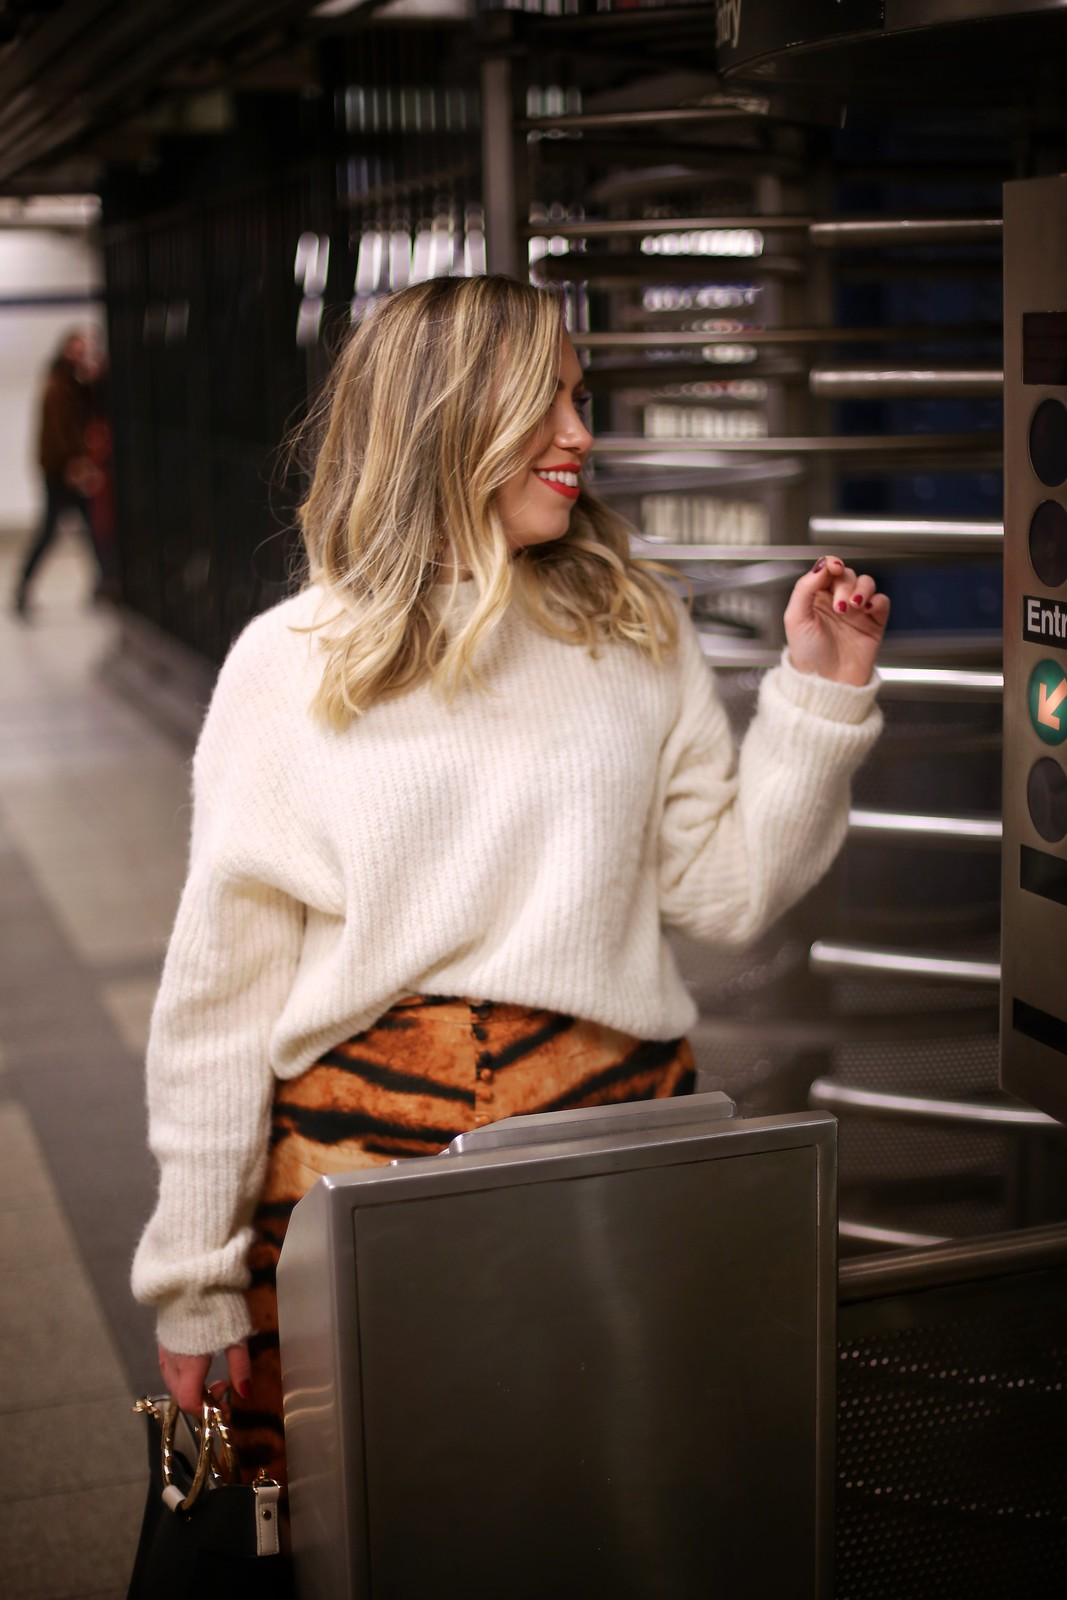 White Reformation Finn Sweater ASOS Orange Tiger Print Skirt Winter Outfit Canal Street Subway Turnstile Fashion Photo Shoot